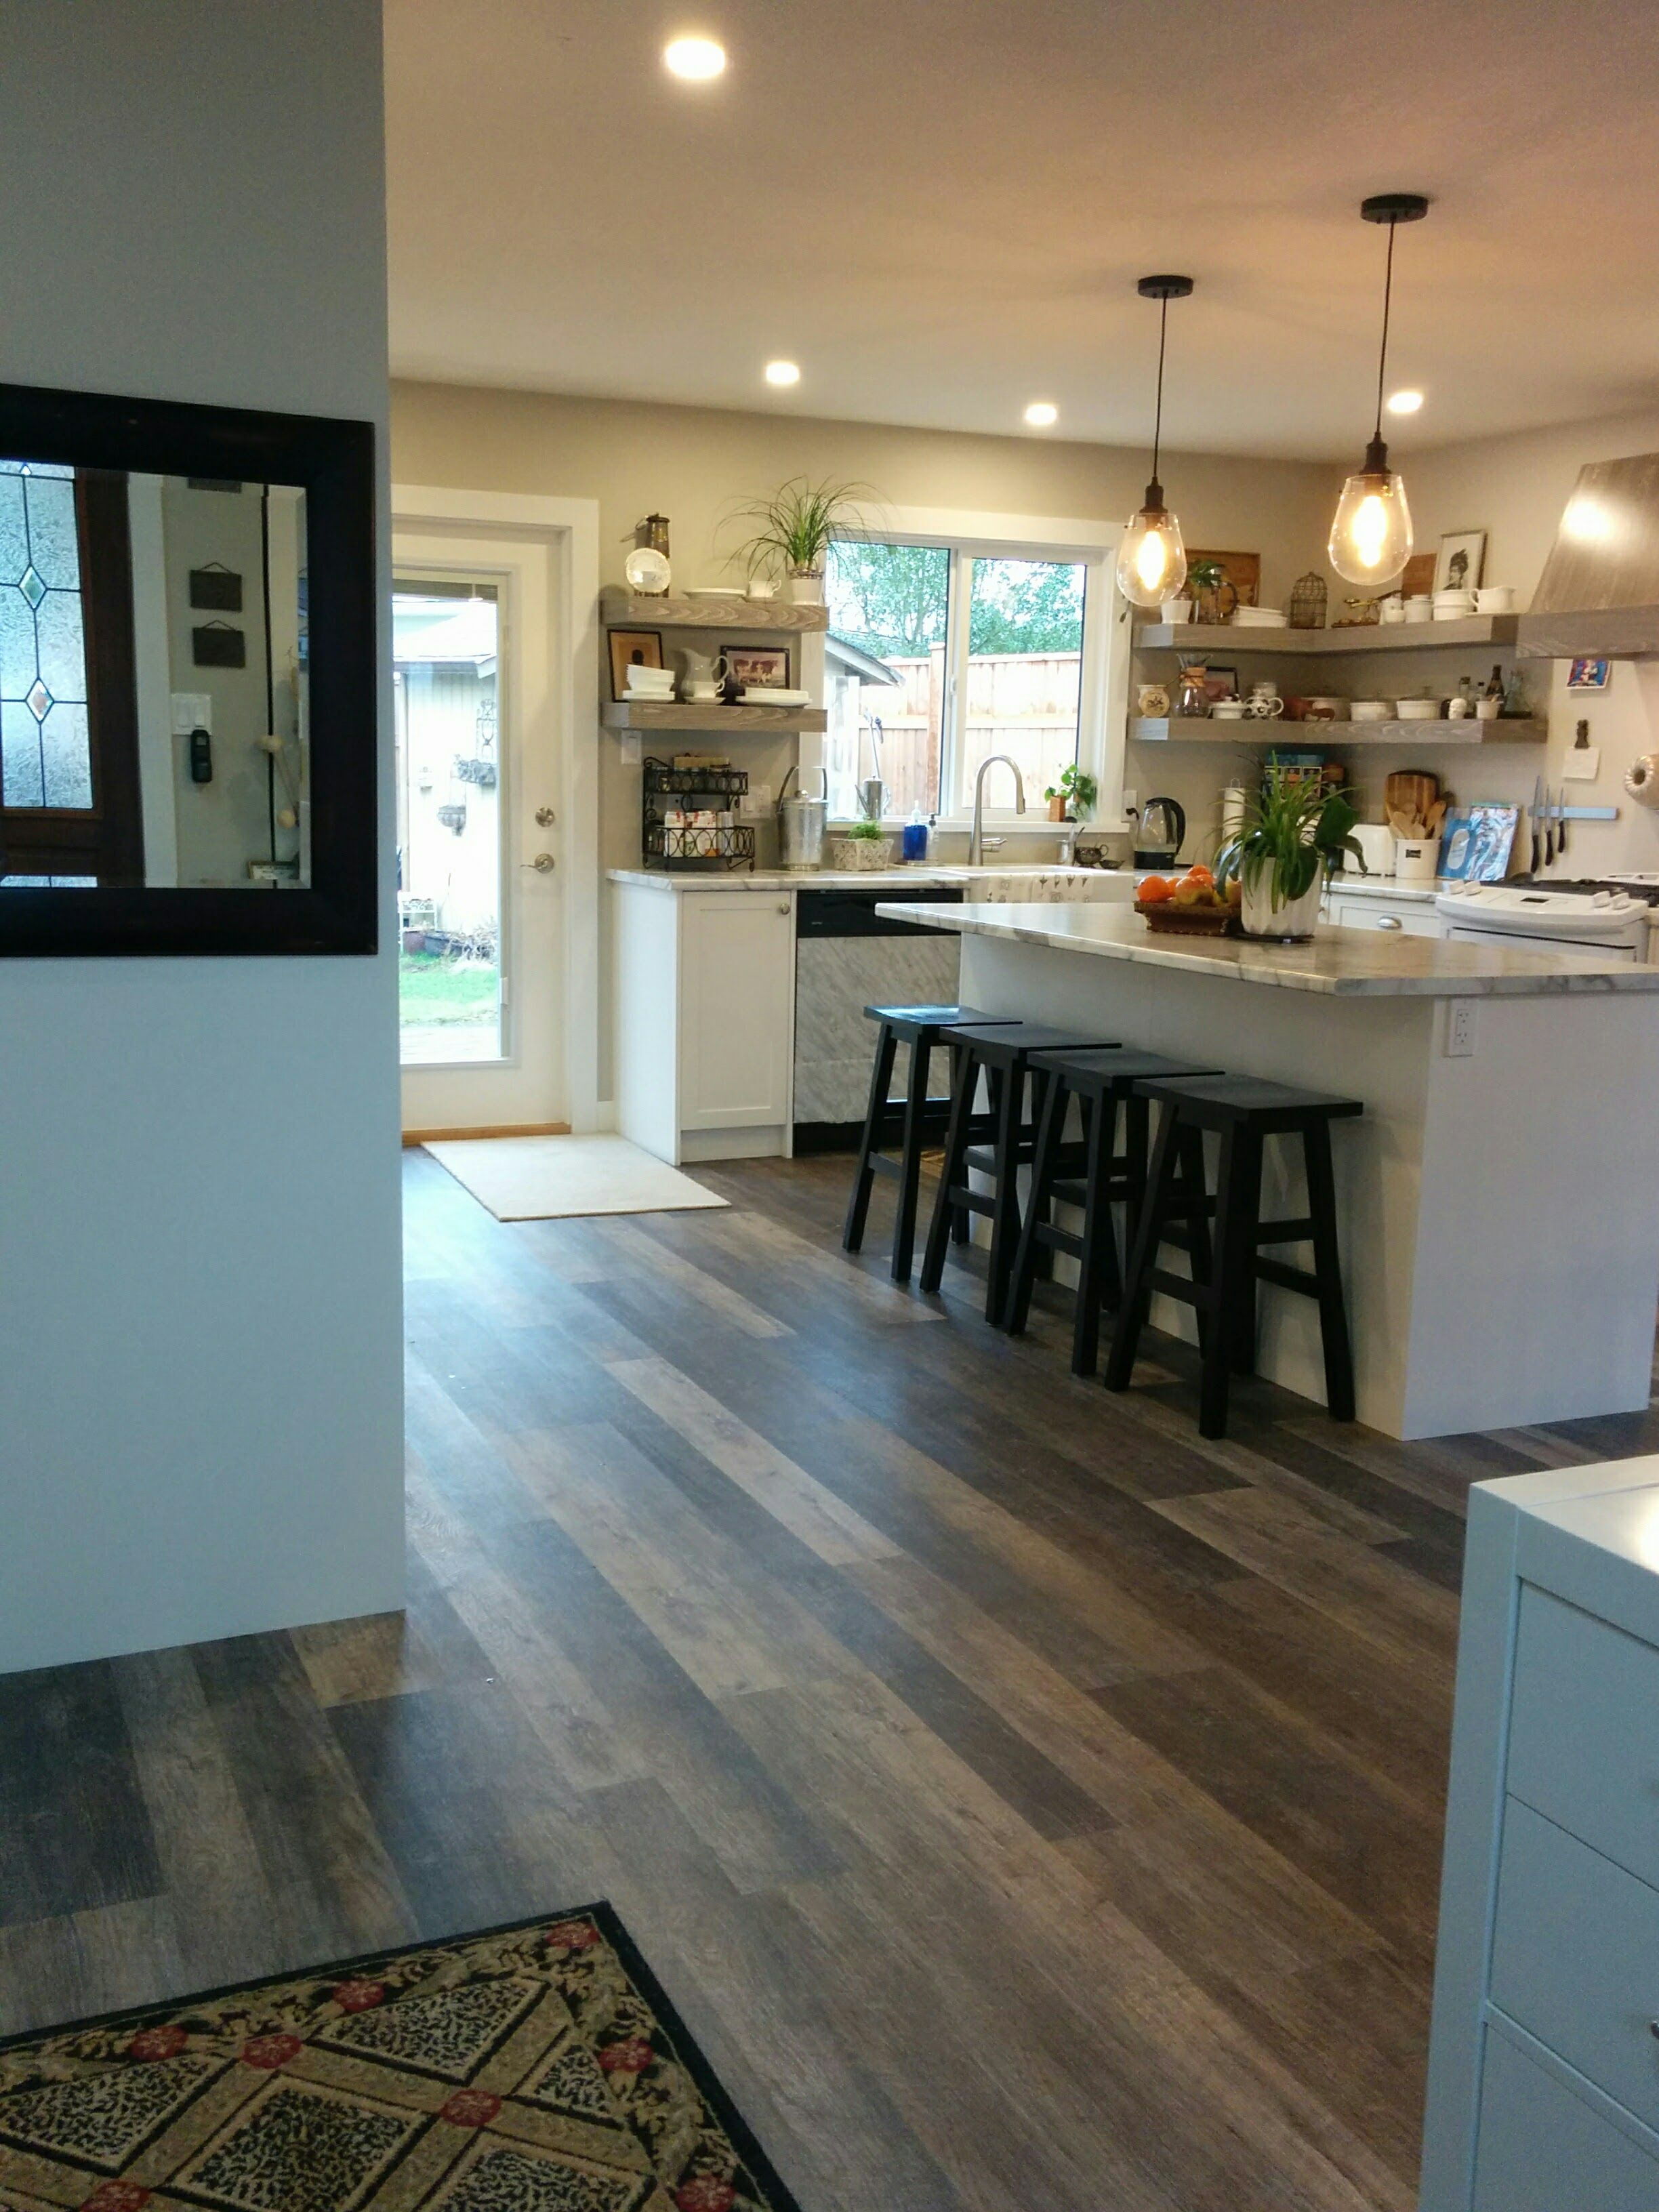 We Opted For Open Shelving In The Part Of The Kitchen That Is Visible From The Front Entrance Area Hallway Vinyl Plank Flooring Kitchen Renovation Front Door